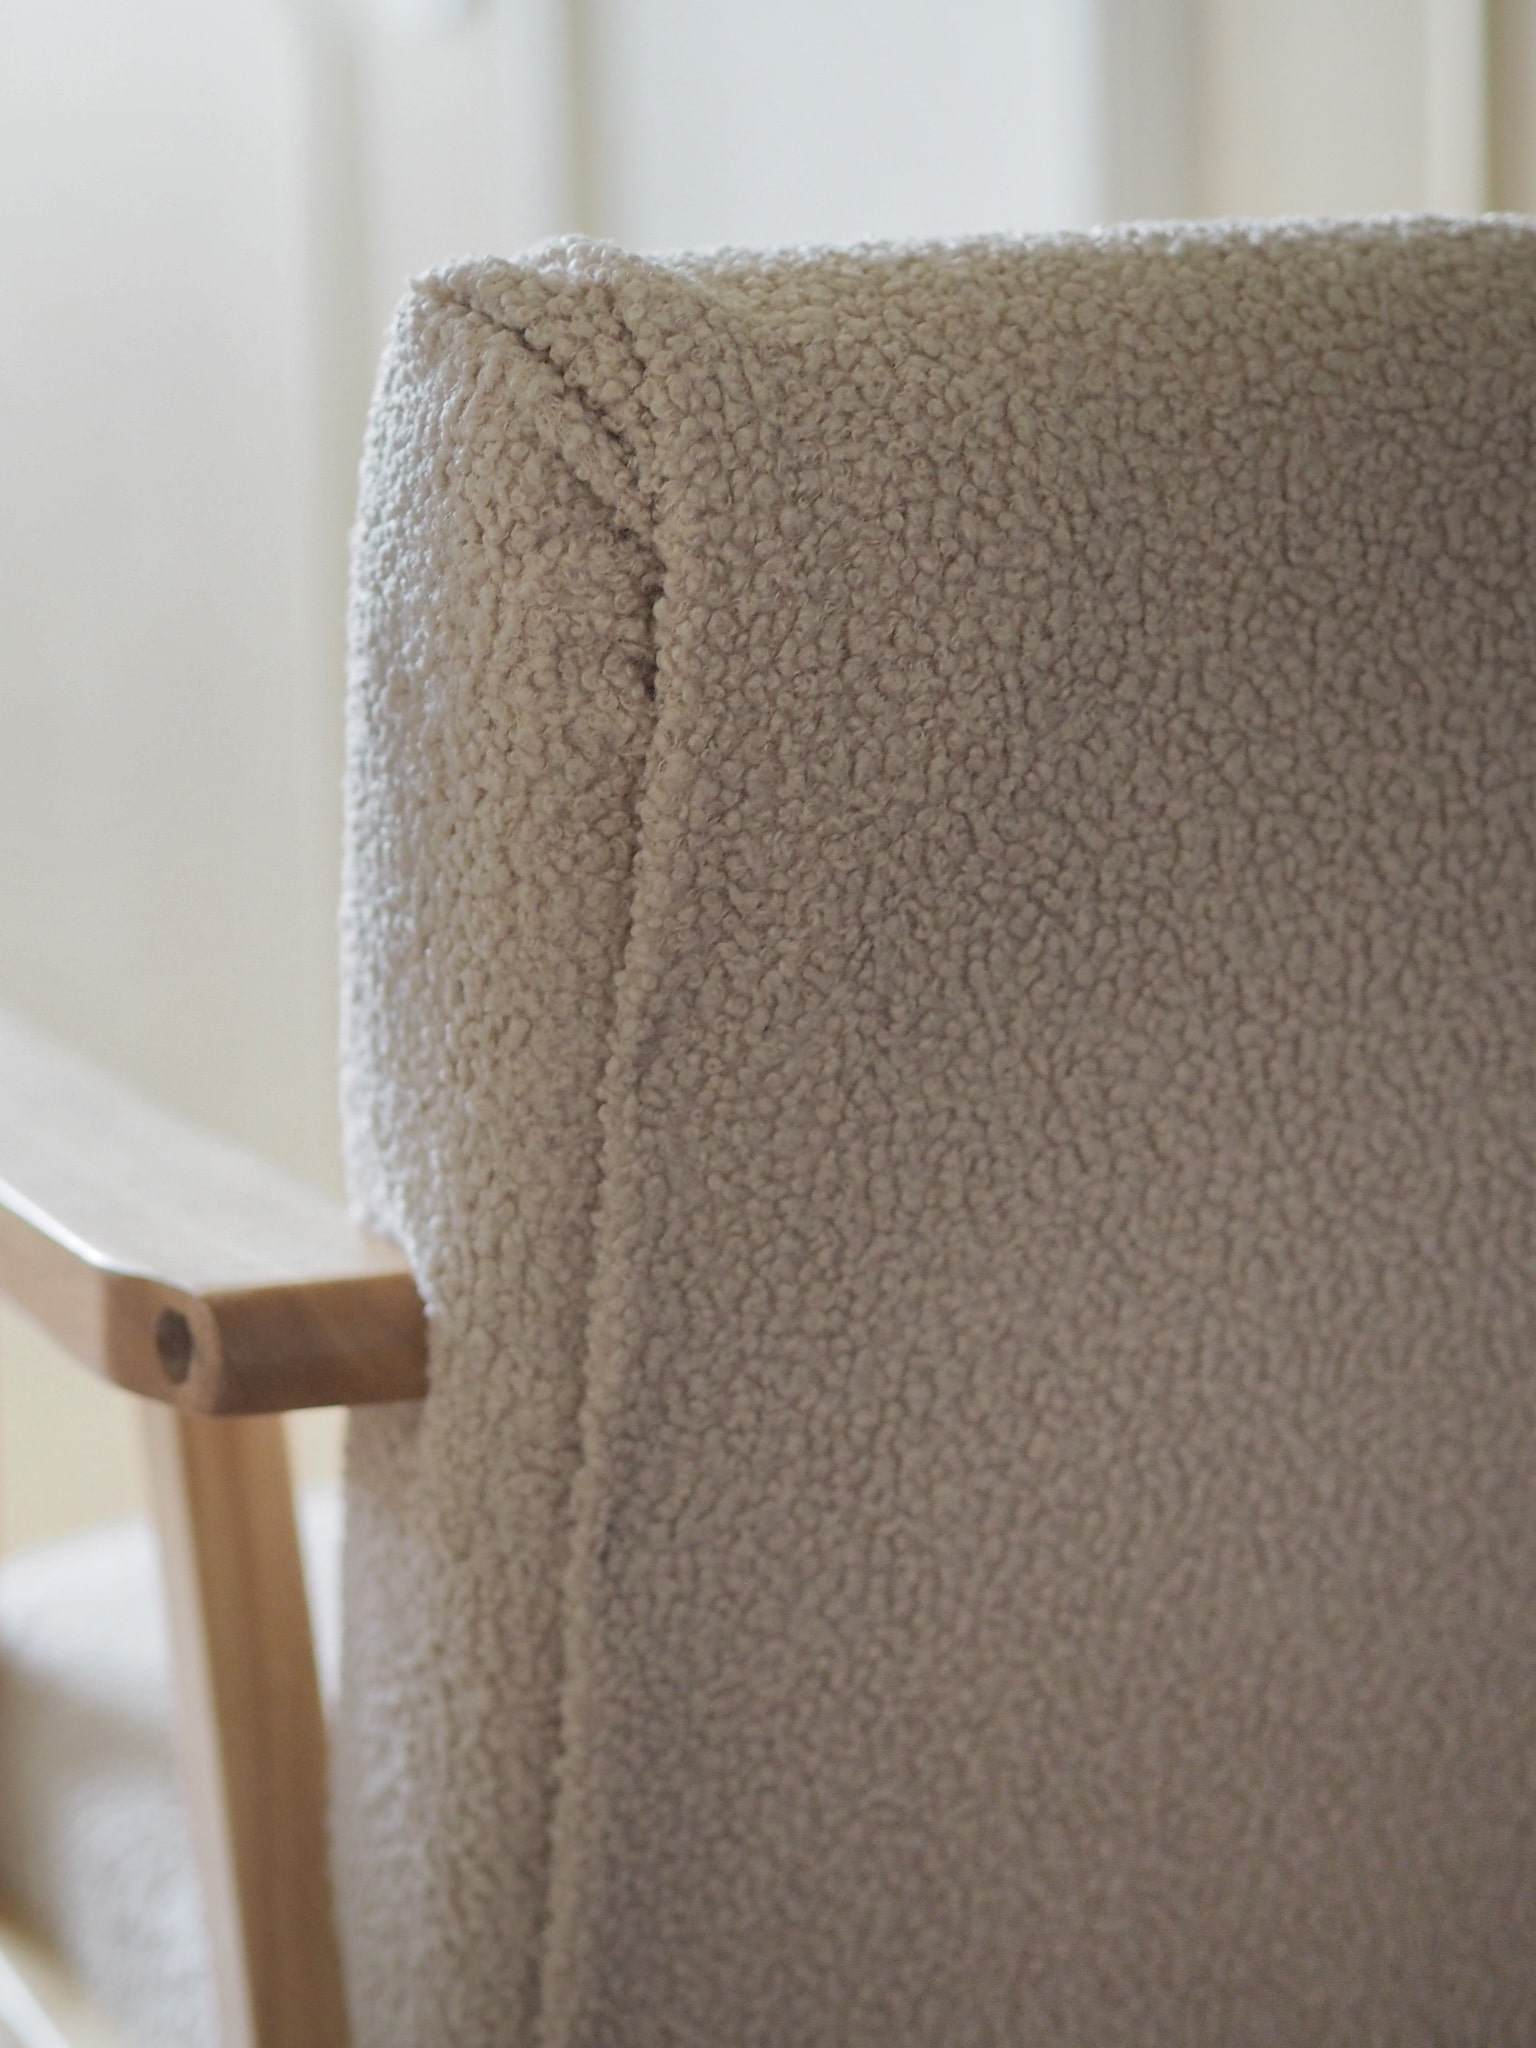 How to upholster an armchair scandi style with boucle fabric, no sew. Use a staple gun and velcro tape to upcycle a chair into a luxury style